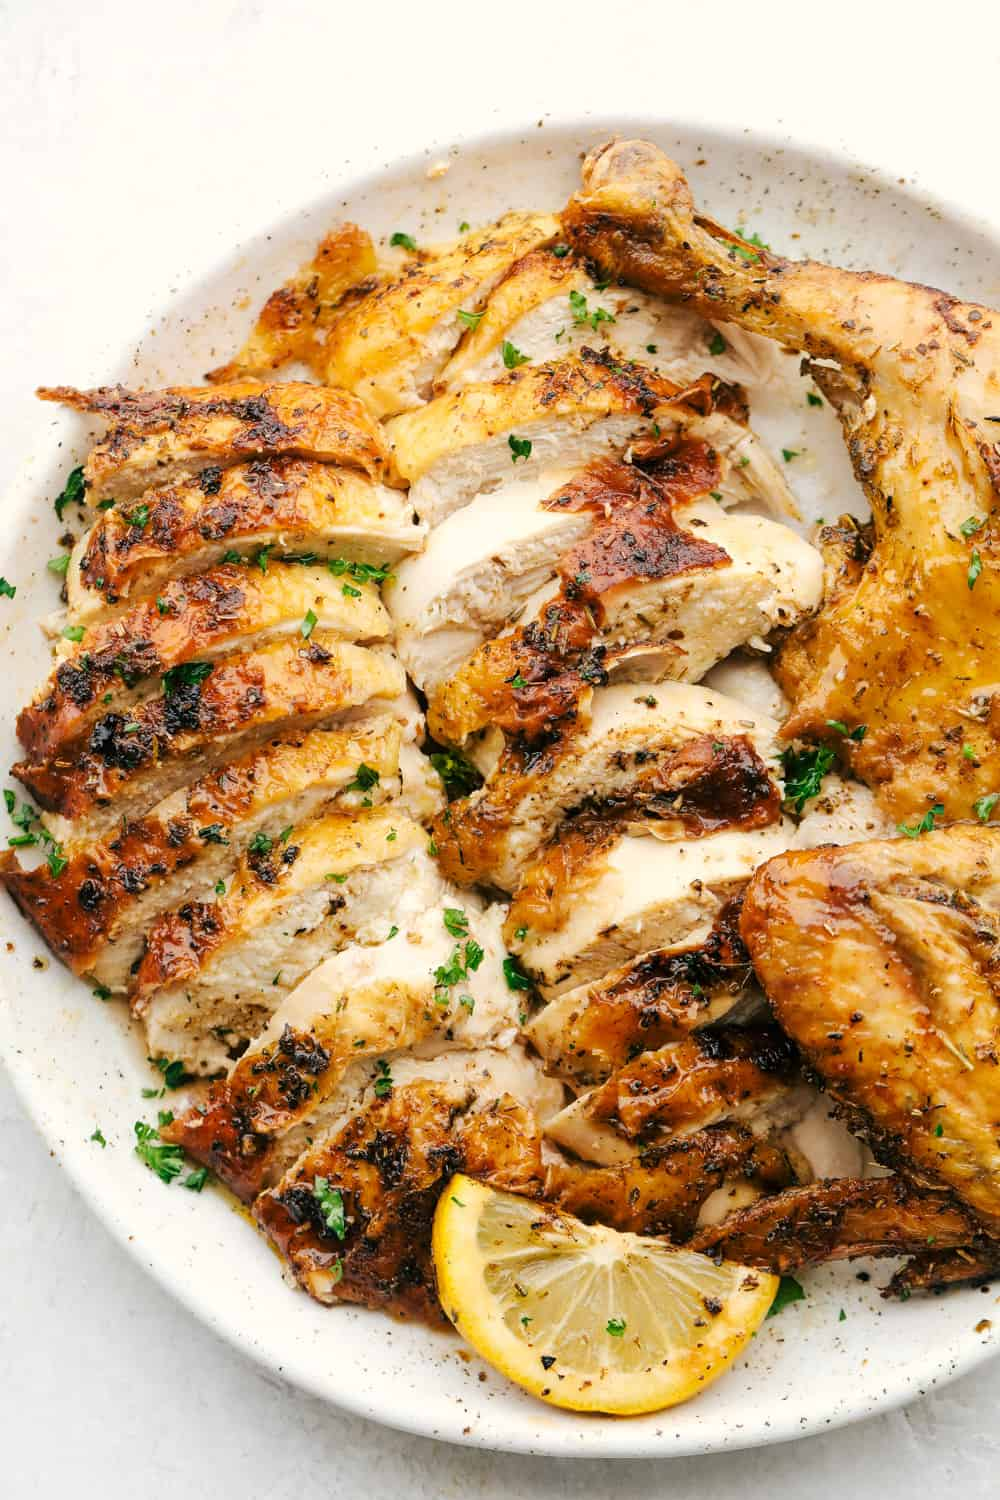 Sliced juicy chicken on a plate with a wedge of lemon.